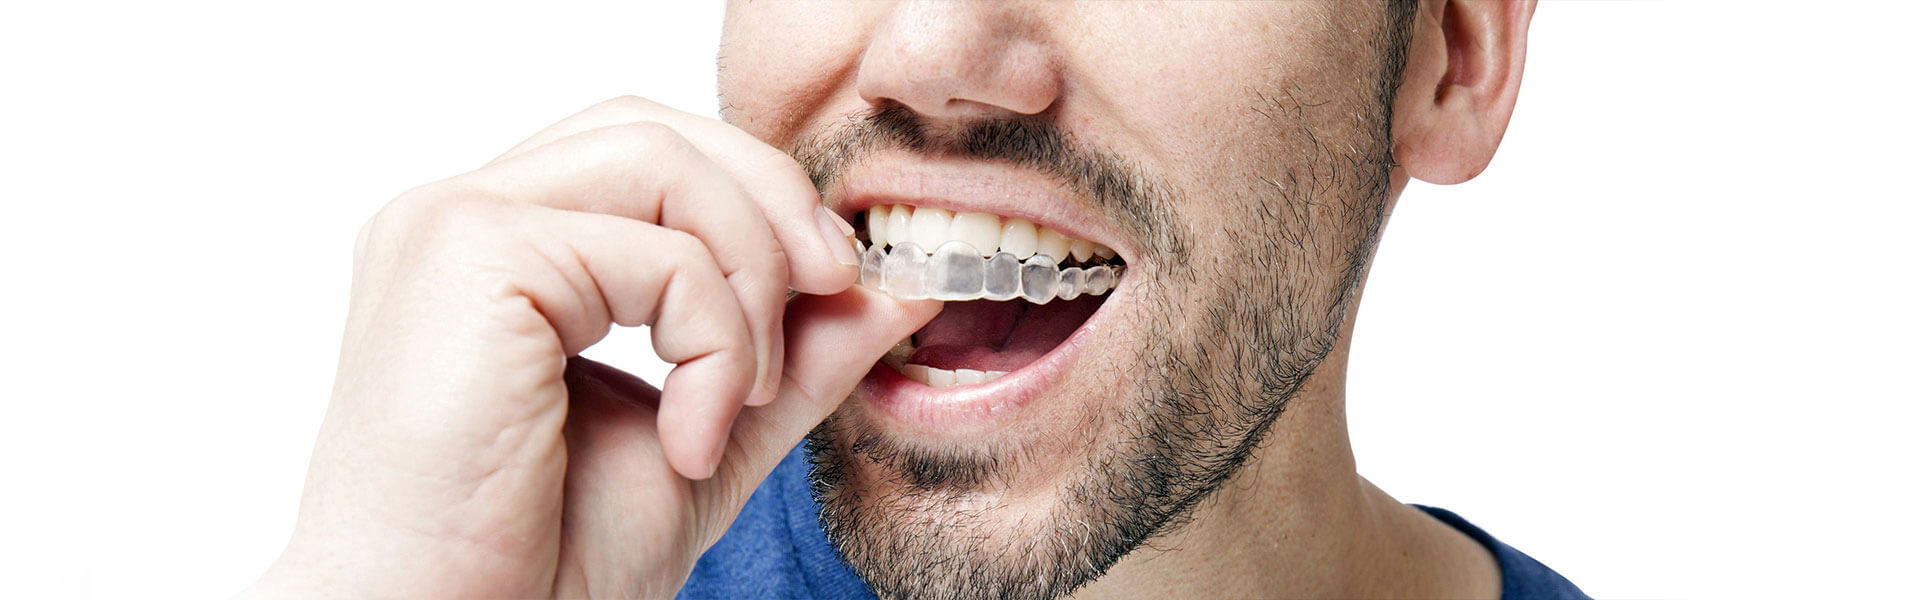 Moving Your Teeth Using Invisalign Braces